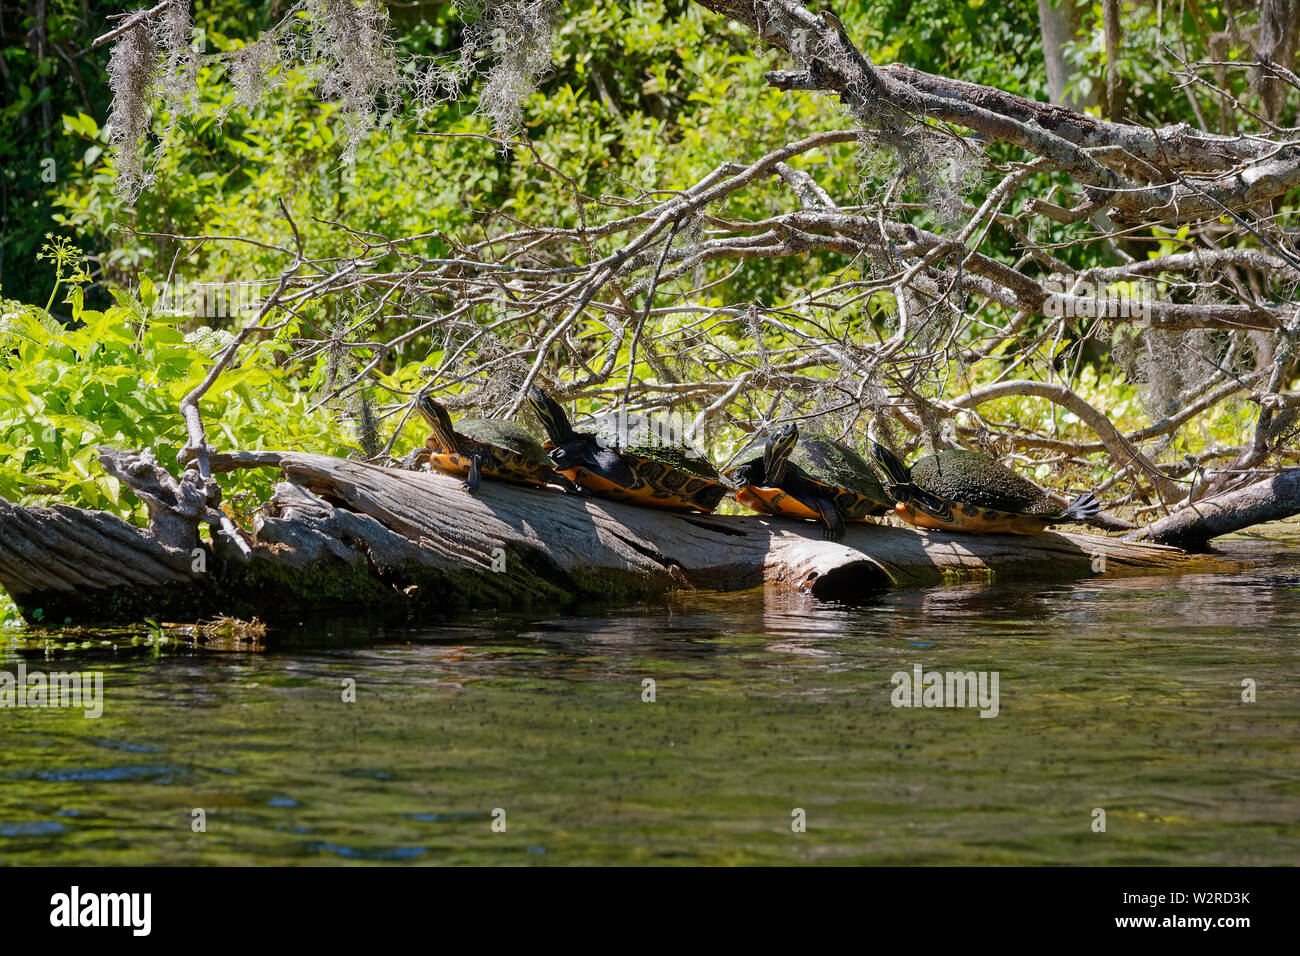 4 turtles on log; Florida Redbelly Cooters, sunning; wildlife; nature, water, tree branches, vegetation, Pseudemys nelsoni, Silver Springs State Park, - Stock Image